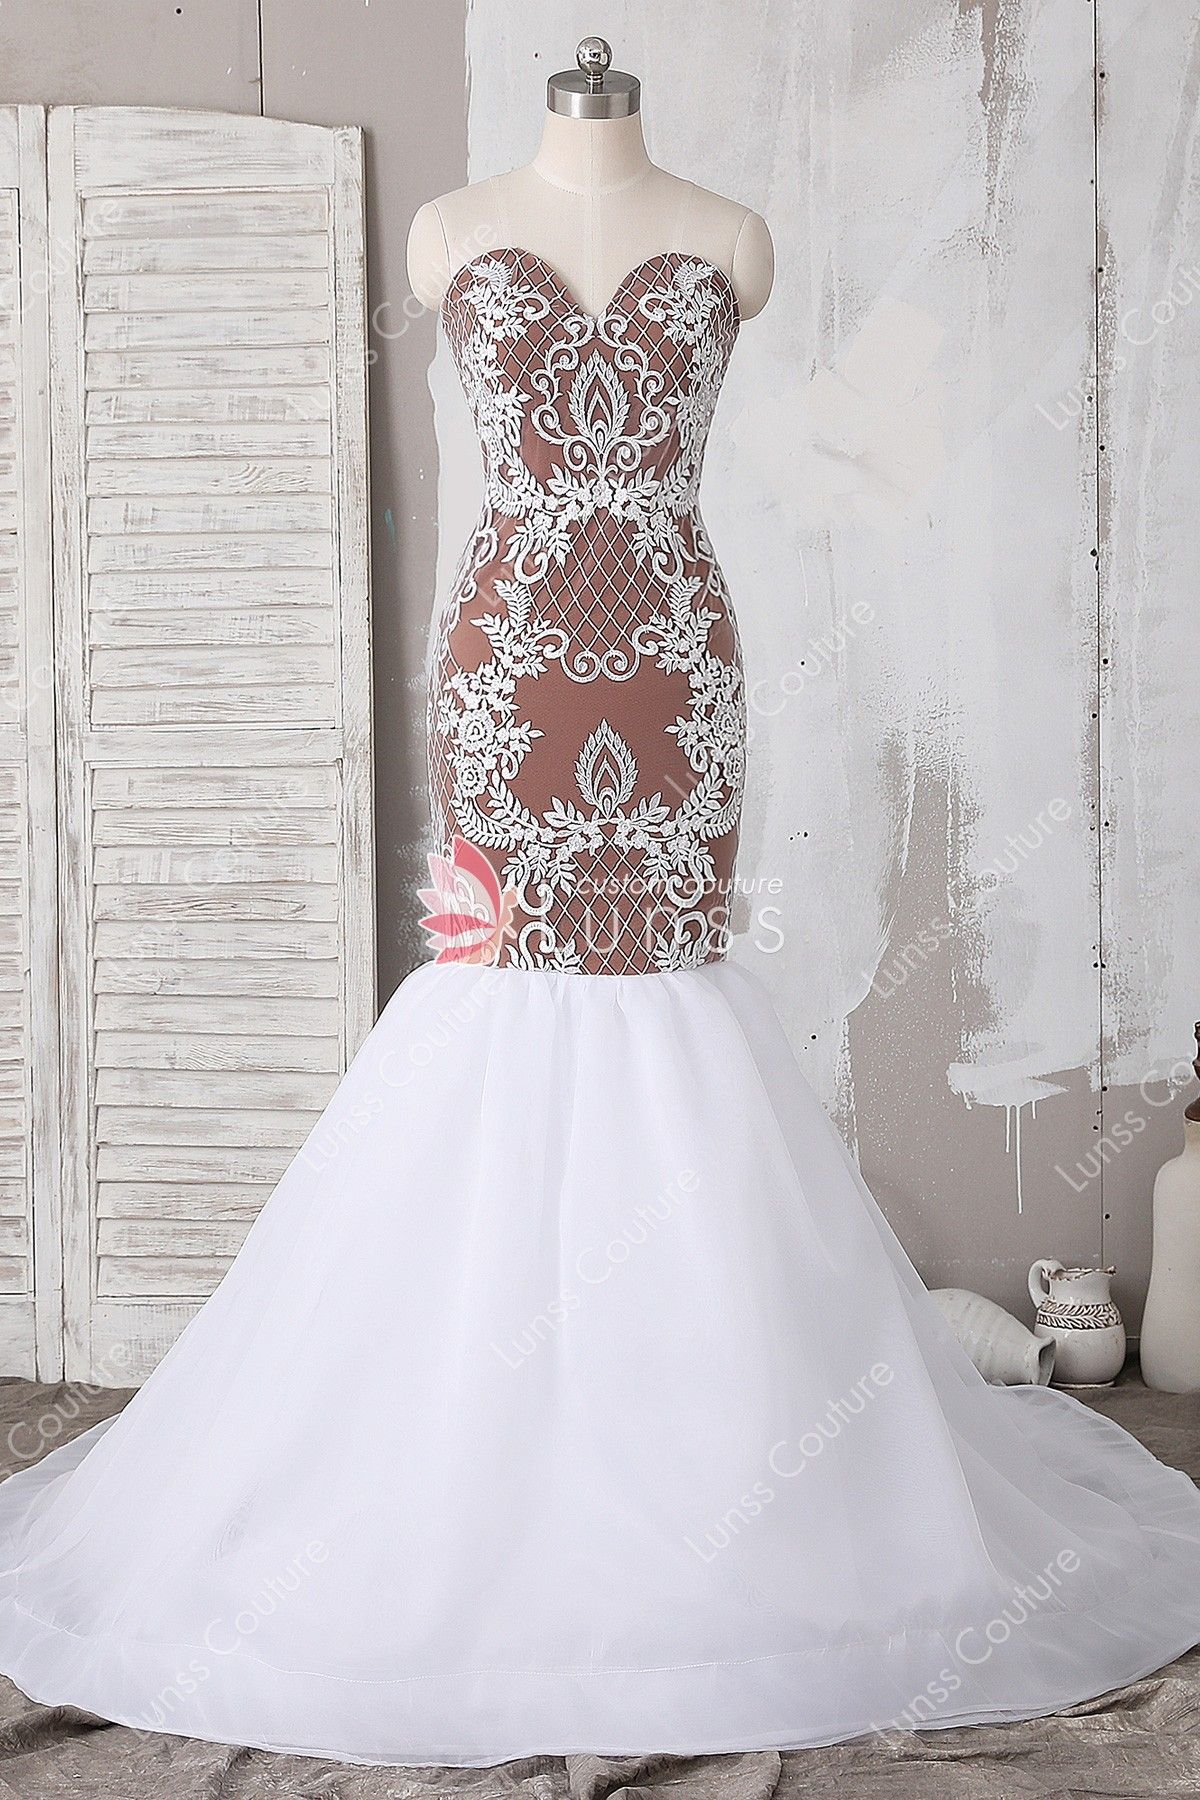 e1985f8fdcfc7 This custom made mermaid wedding dress features ivory symmetric abstract  pattern lace fabric overlaid from strapless